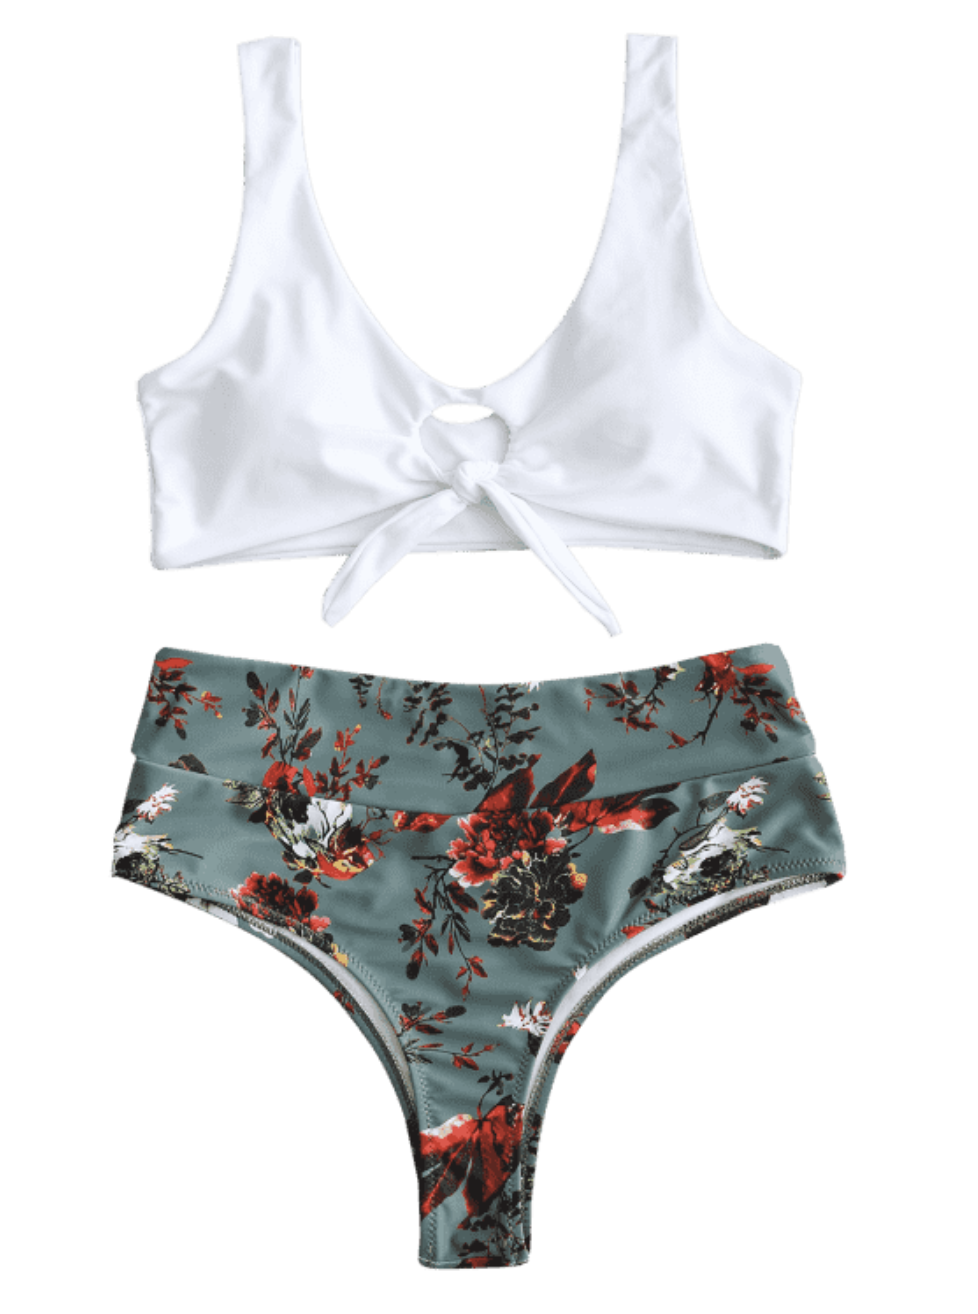 Front Knot Floral Bikini Set - Hazel Green | Cute, Sexy Honeymoon, Vacation, Summer Bikinis, Swim Suits | Miranda Schroeder Blog